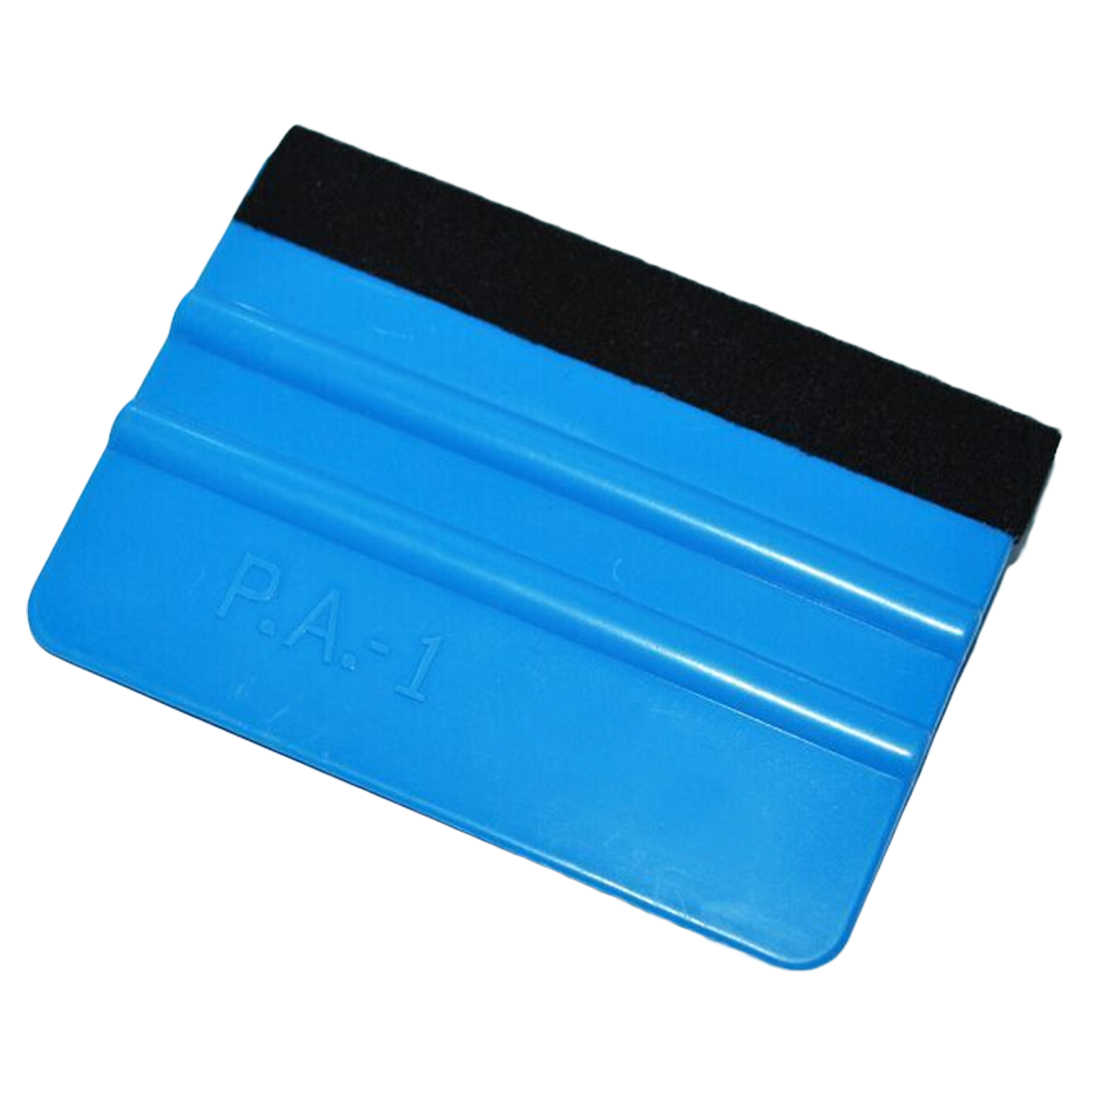 Felt Squeegee Vinyl Car Wrap Tool Carbon Fiber Foil Vinyl Scraper Window Tint Tools Car Glass Cleaning Tool Brush